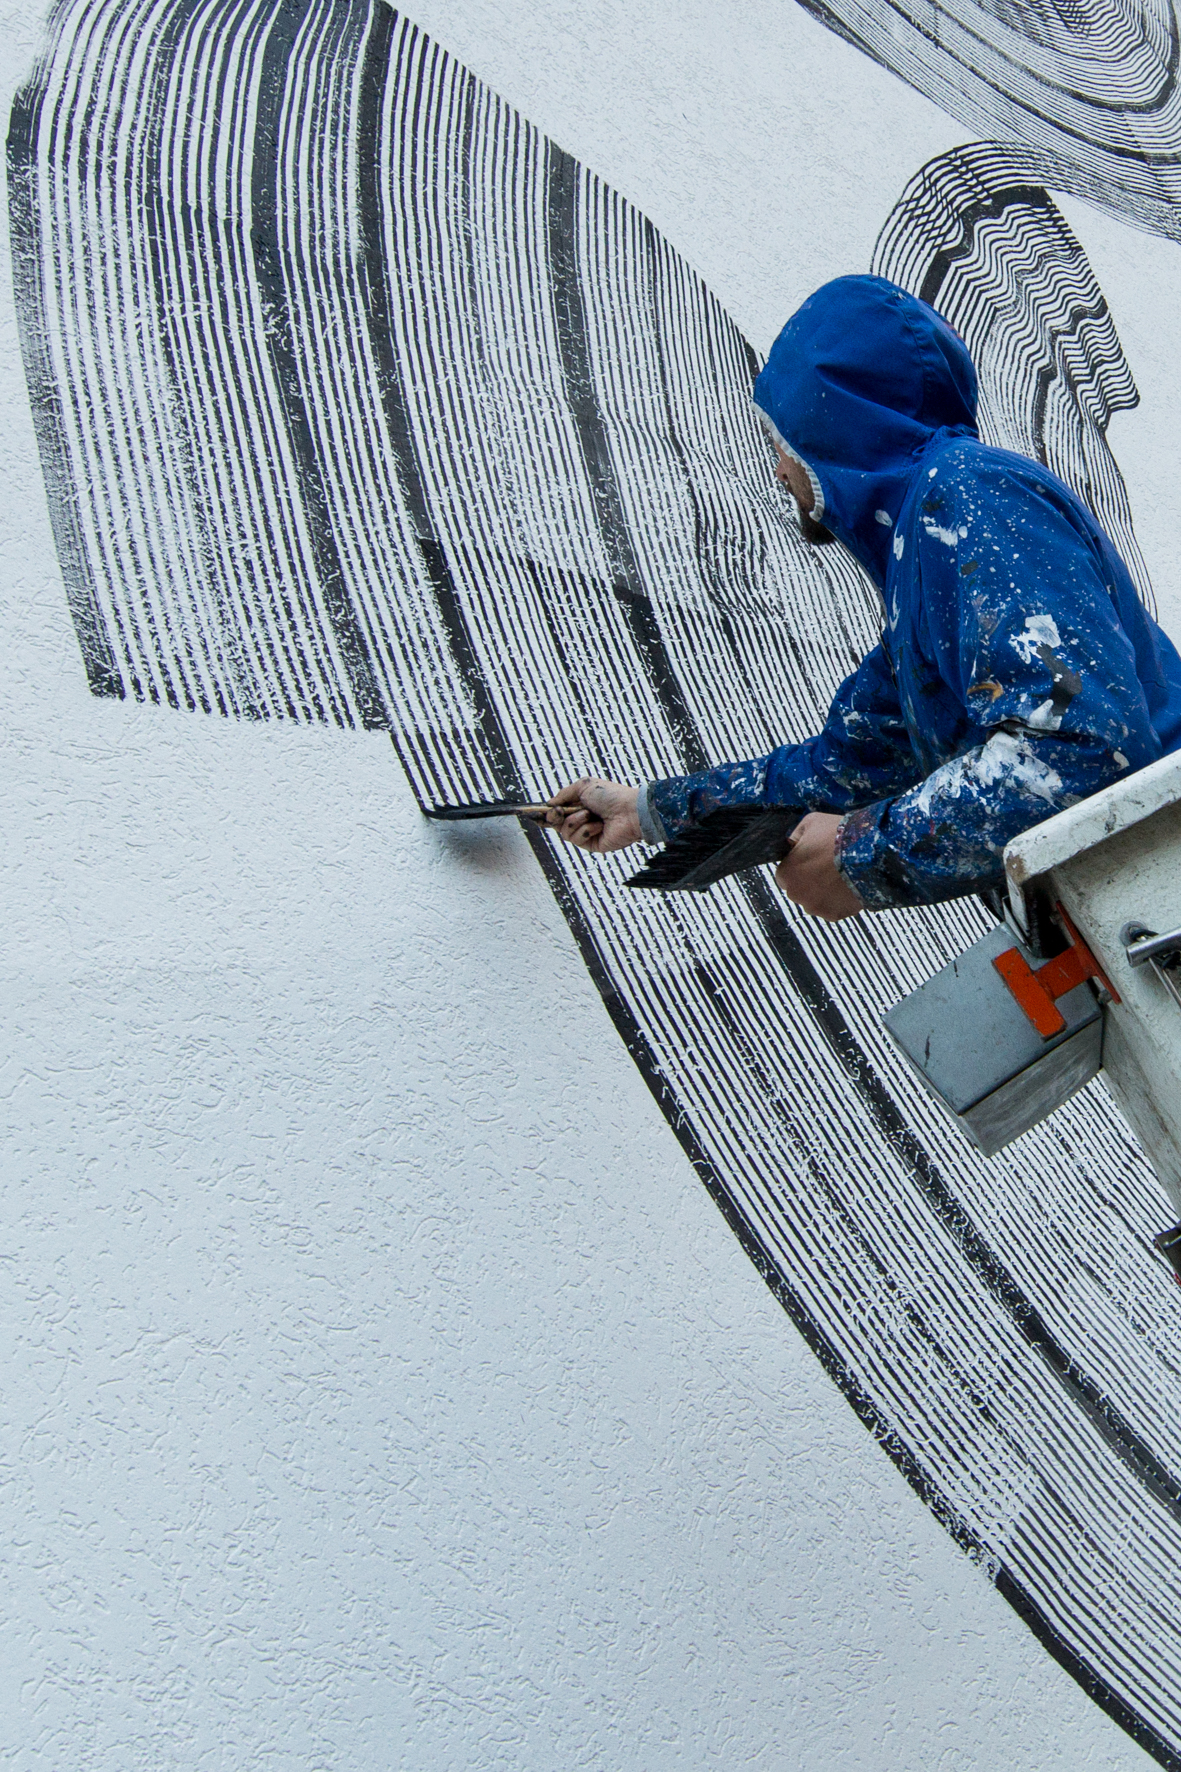 2501 working on Paspardo wall in art distretto culturale valle camonica